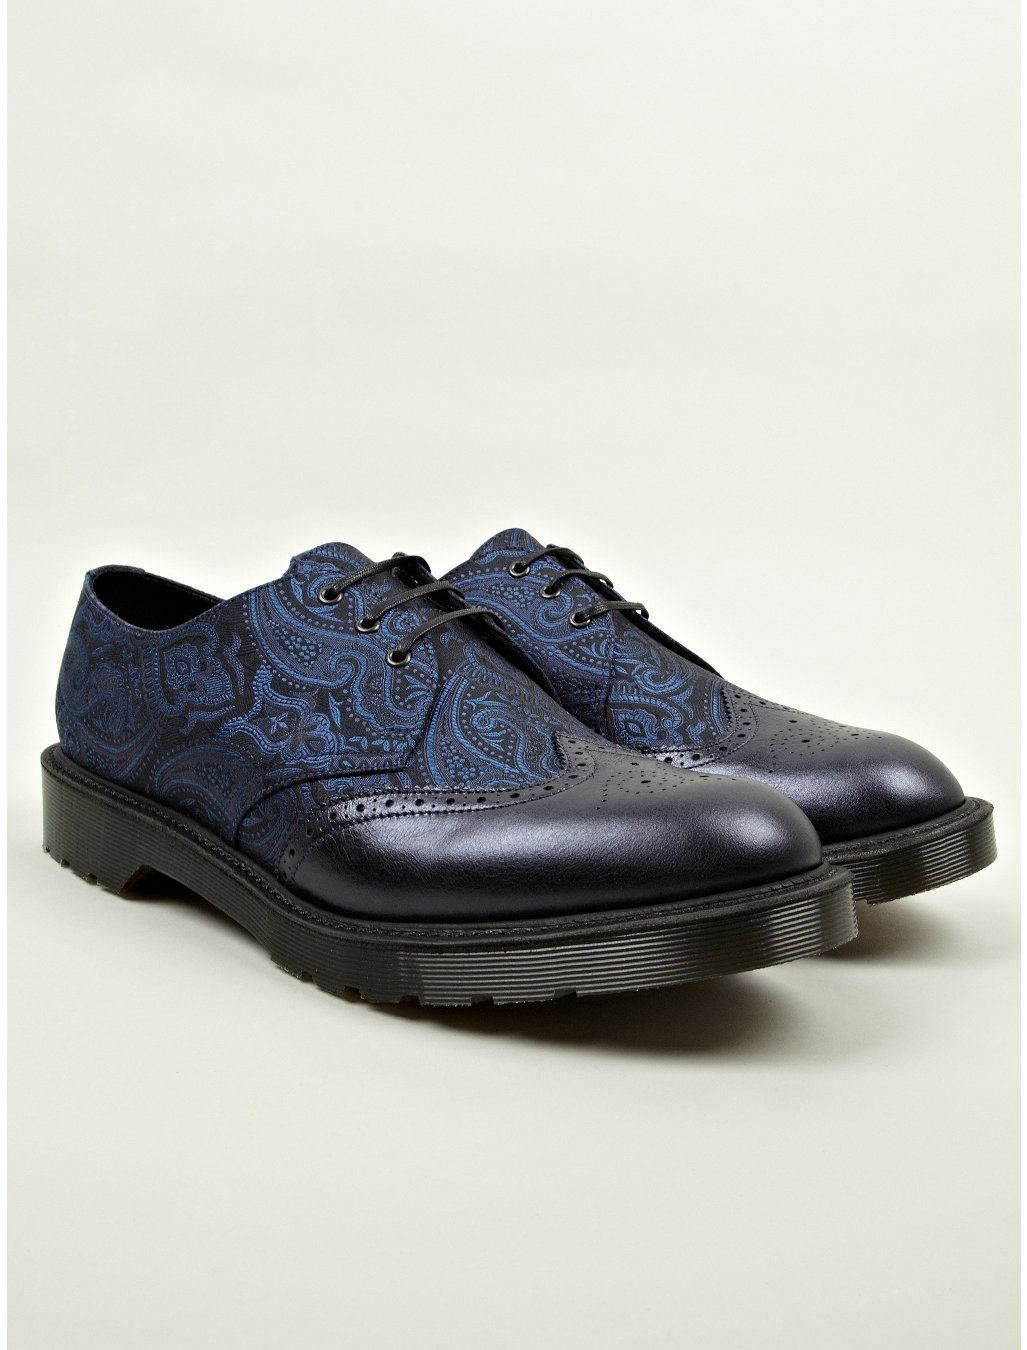 Dr Martens Men's Navy Blue MIE Dannon Paisley Silk Shoes | oki-ni